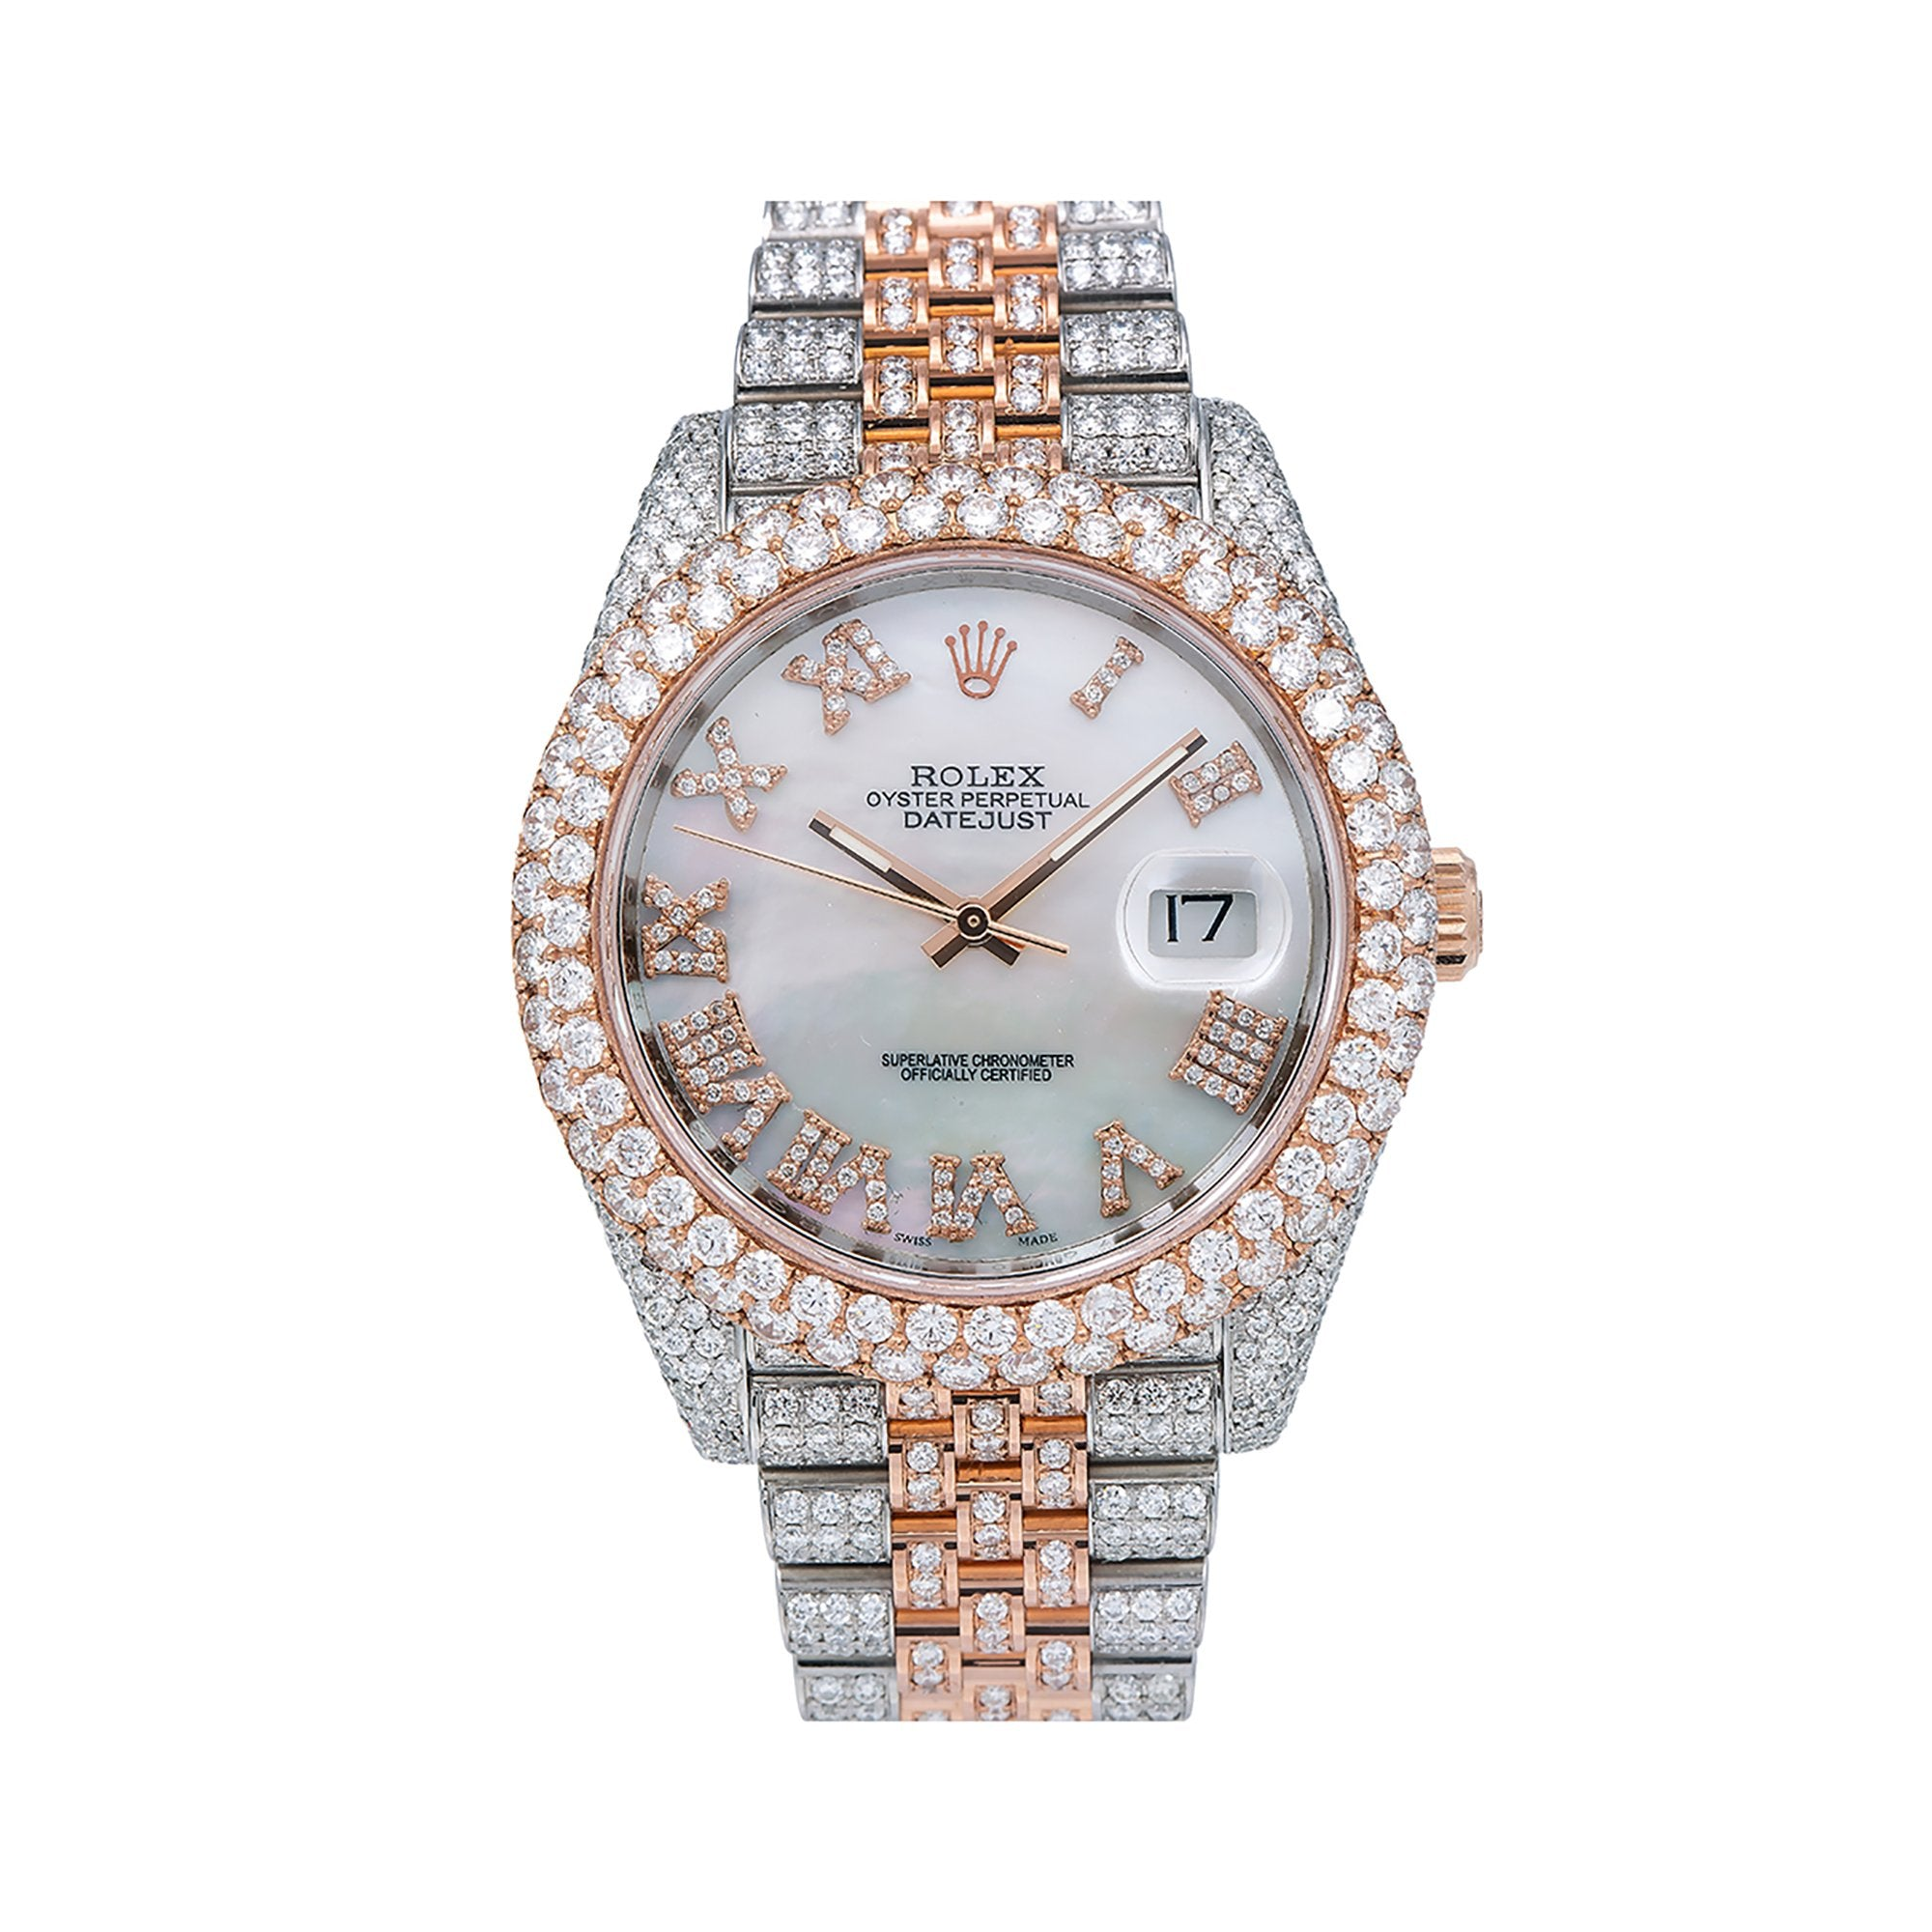 Rolex Datejust II Diamond Watch, 126331 41mm, White Mother of Pearl Diamond Dial With 19.25 CT Diamonds